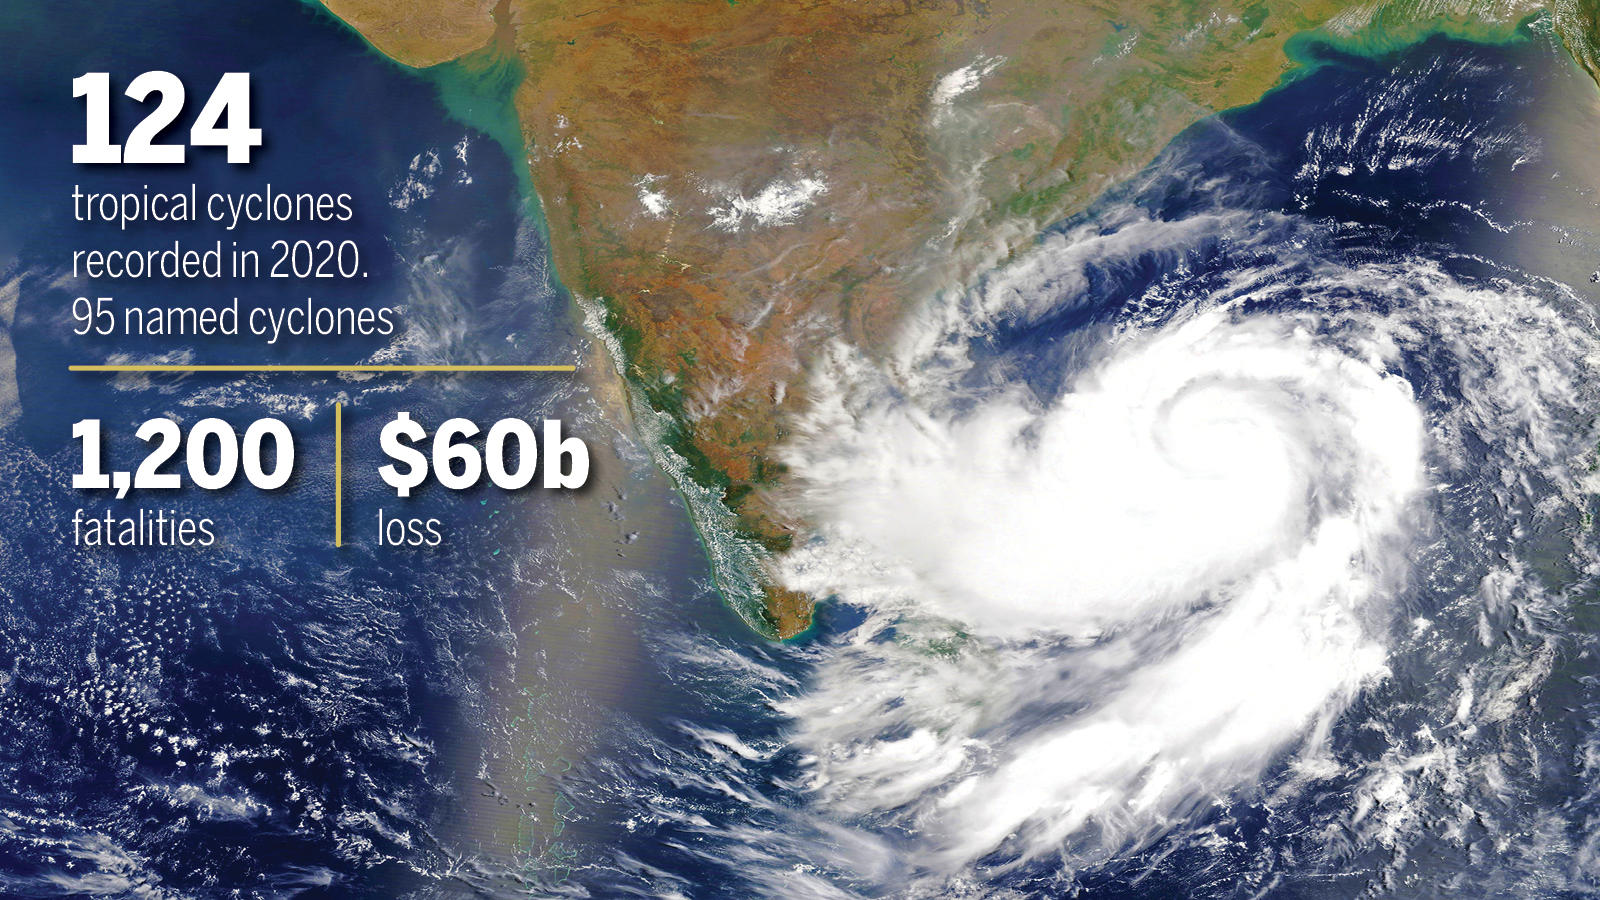 Cyclones In India Why Cyclones Are Becoming Severe Times Of India